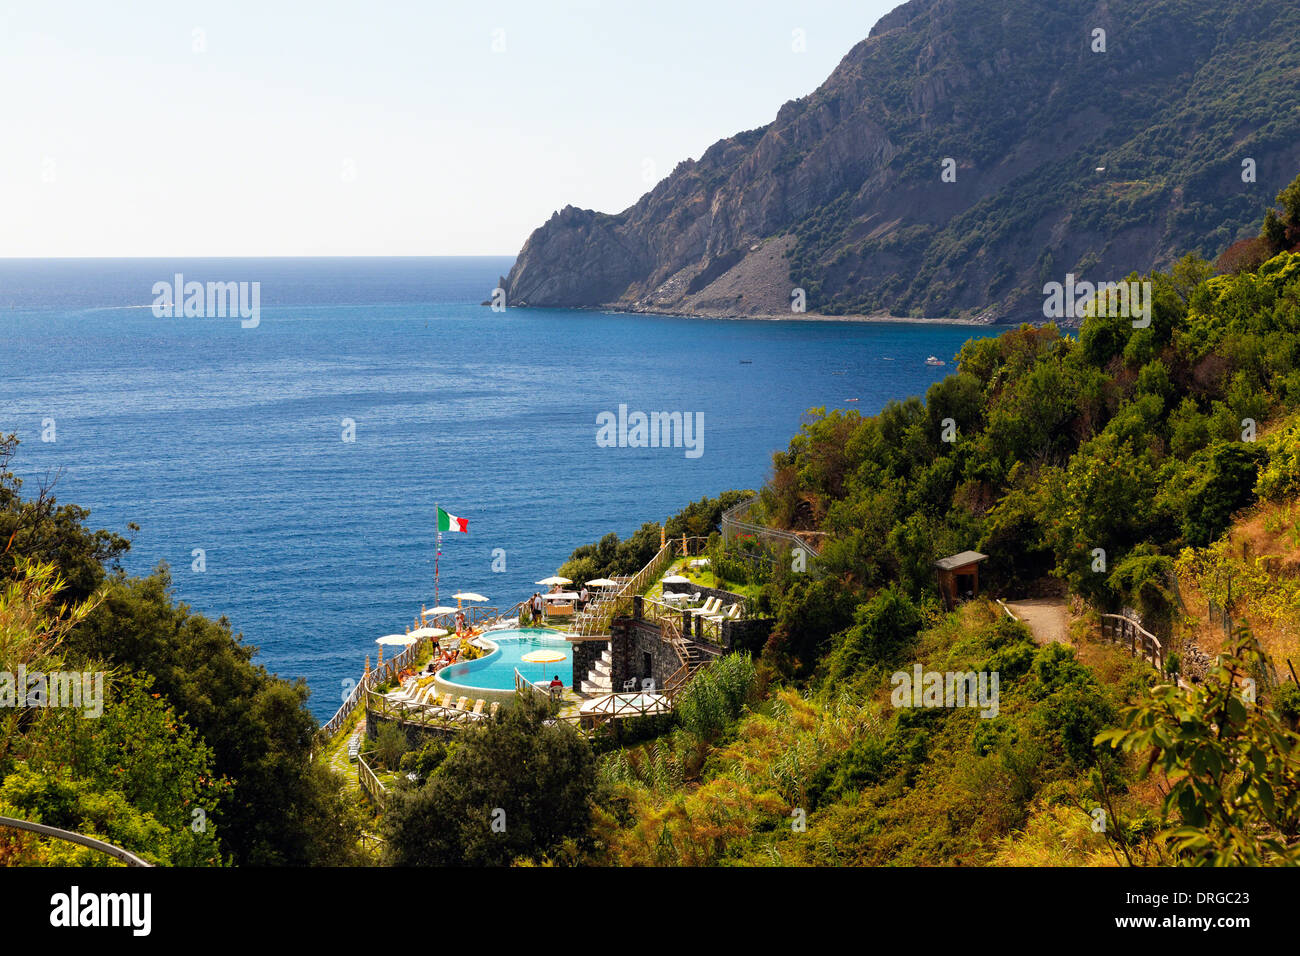 High Angle View of the Coast with a Pool, Monterosso Al Mare, Cinque Terre, Liguria, Italy - Stock Image